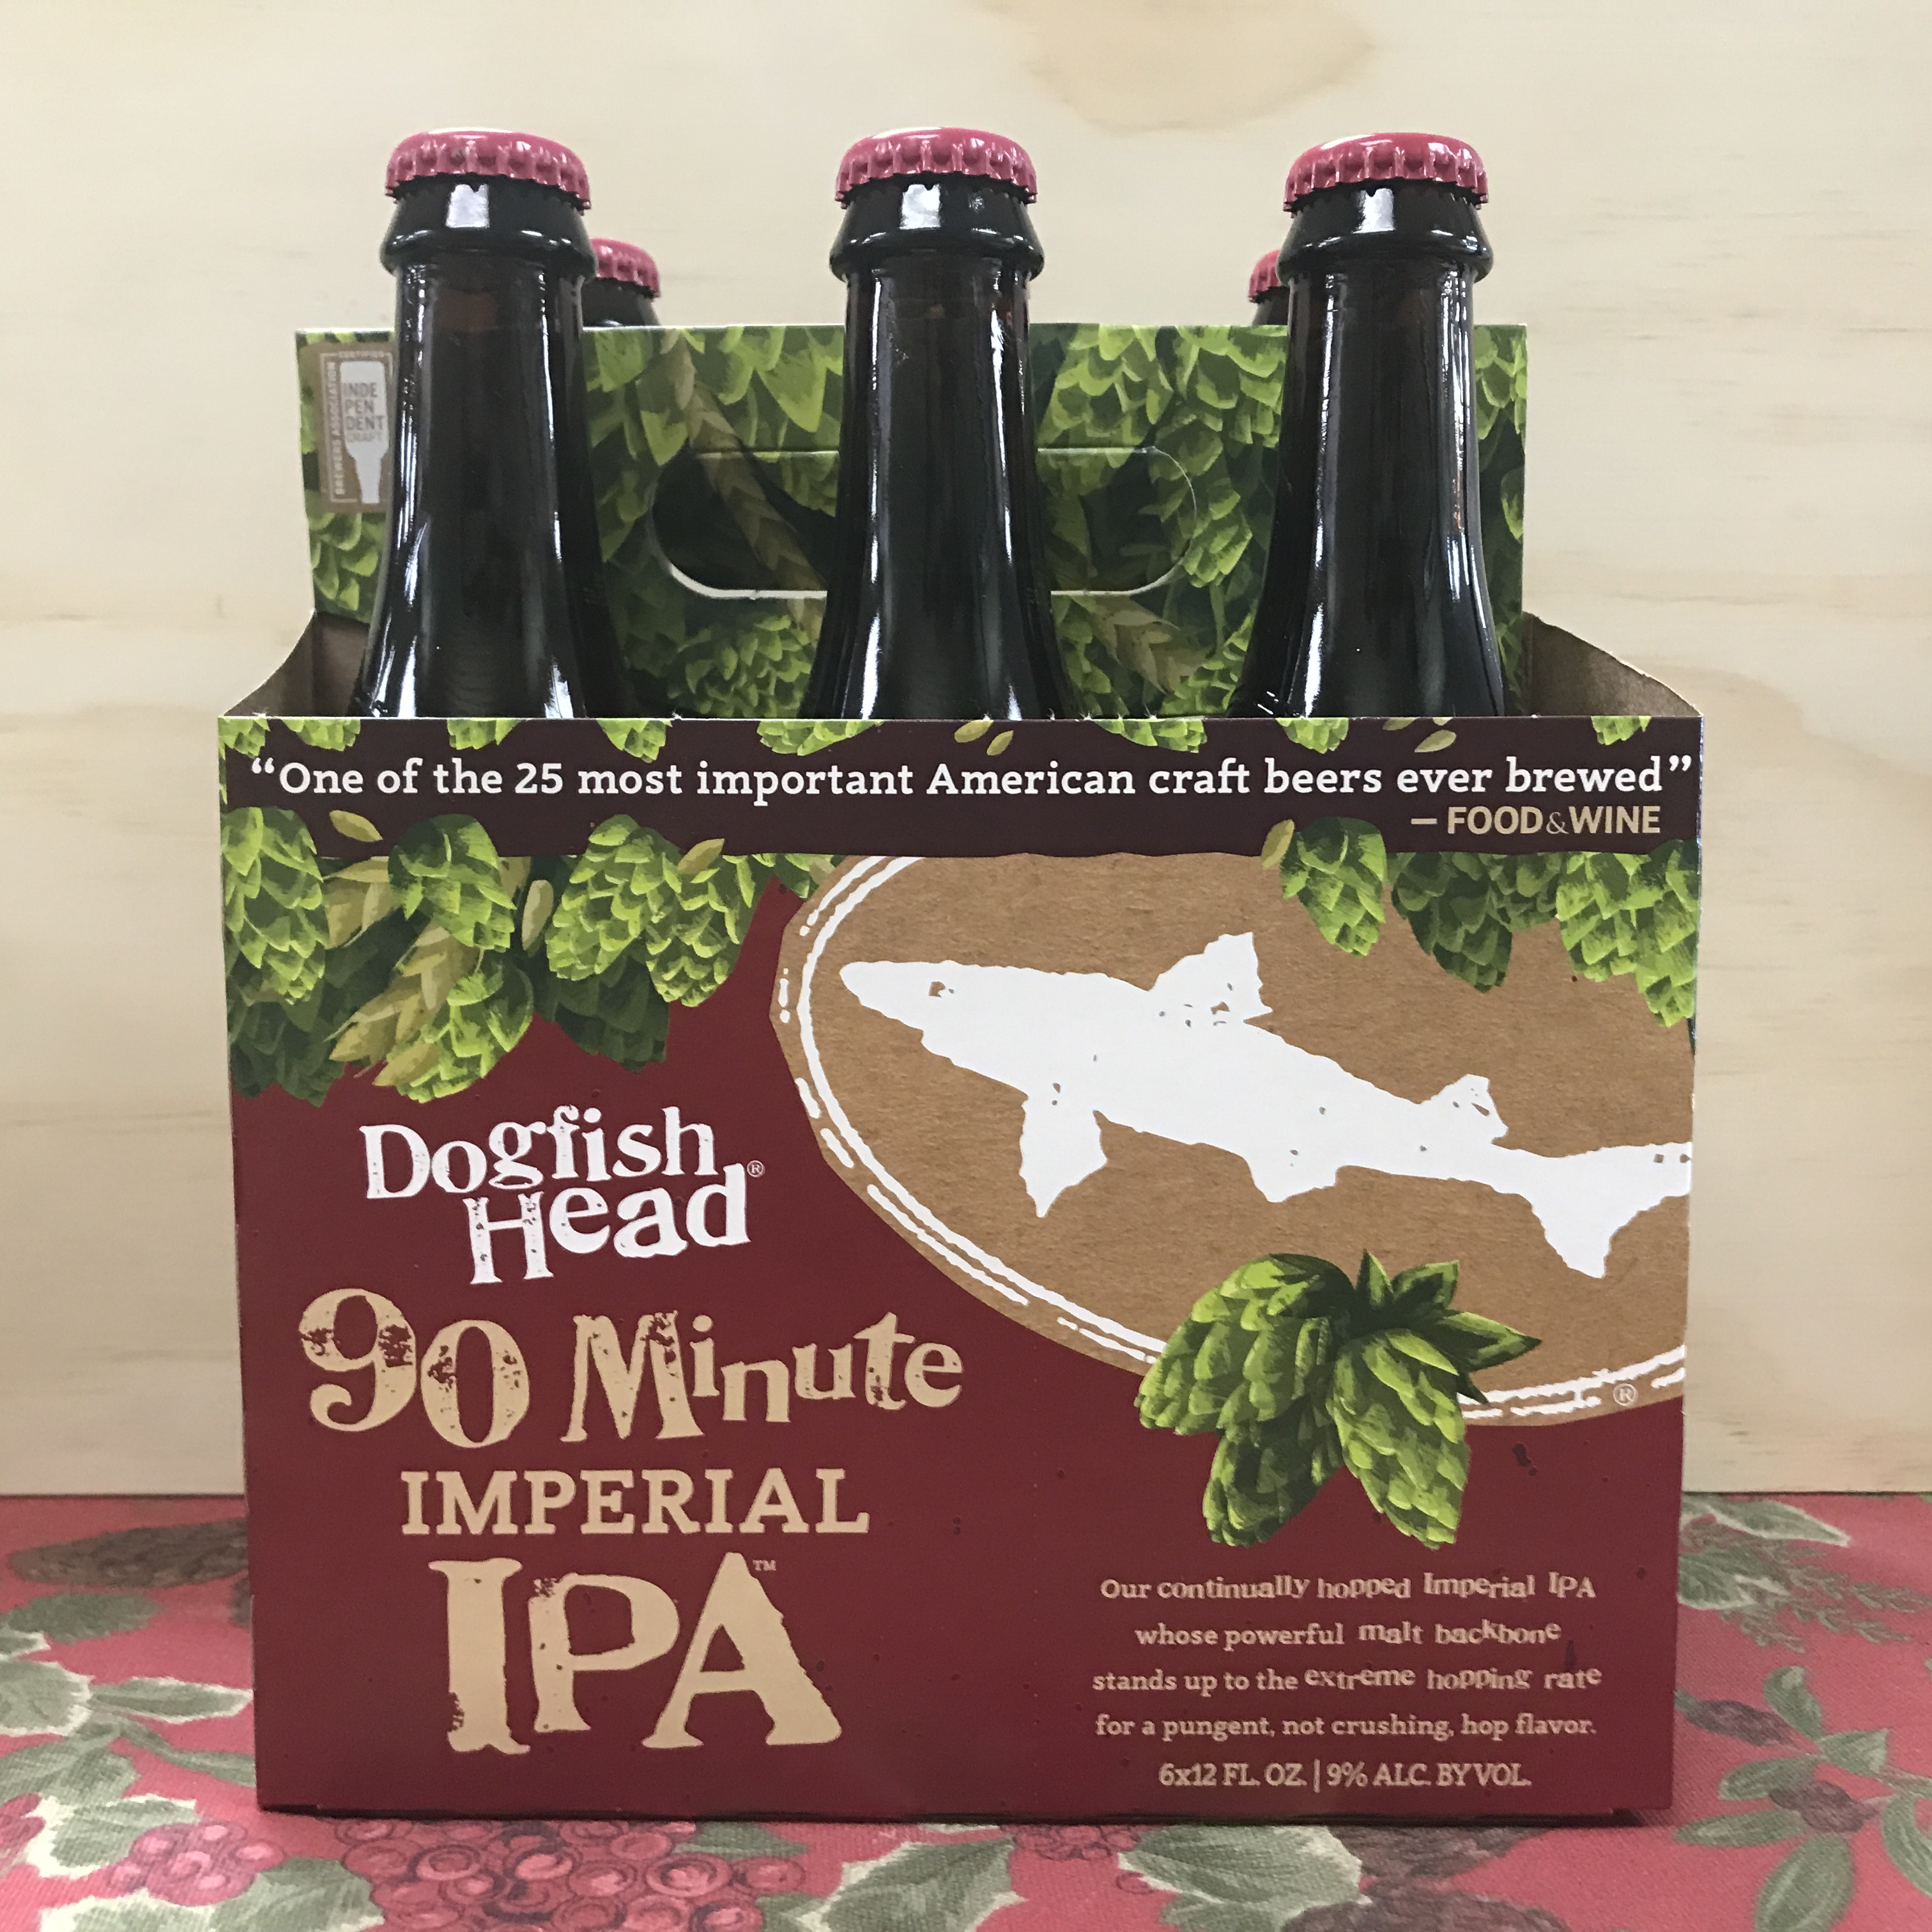 Dogfish Head 90 Minute Imperial IPA 6 x 12 bottles